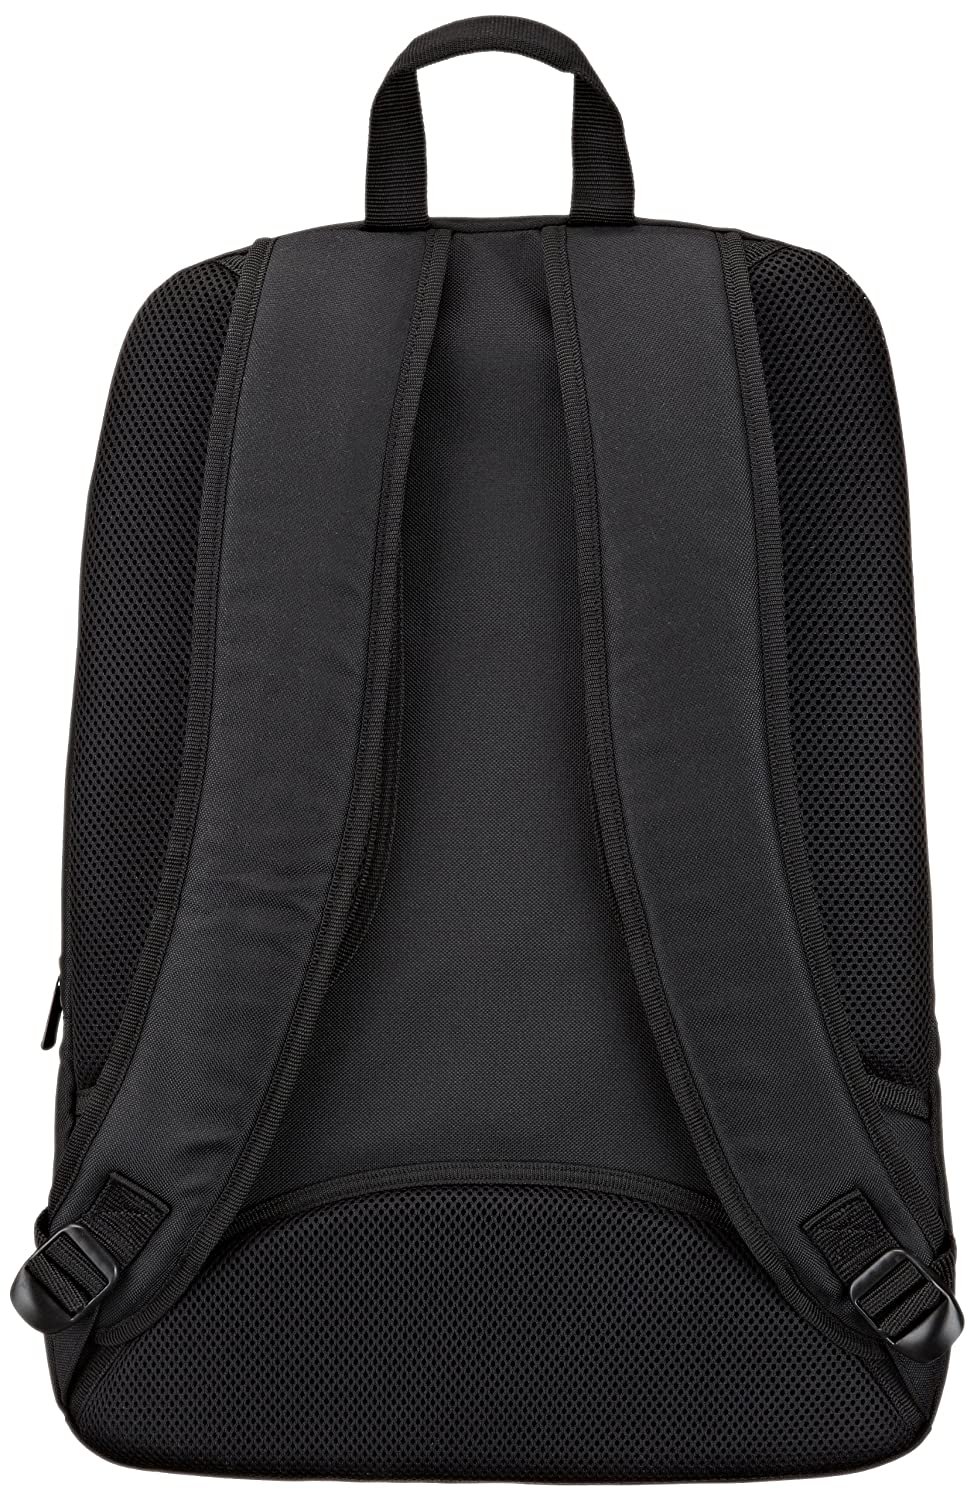 52141c3b9c86 AmazonBasics 15 Inch Laptop Backpack  Amazon.co.uk  Computers   Accessories